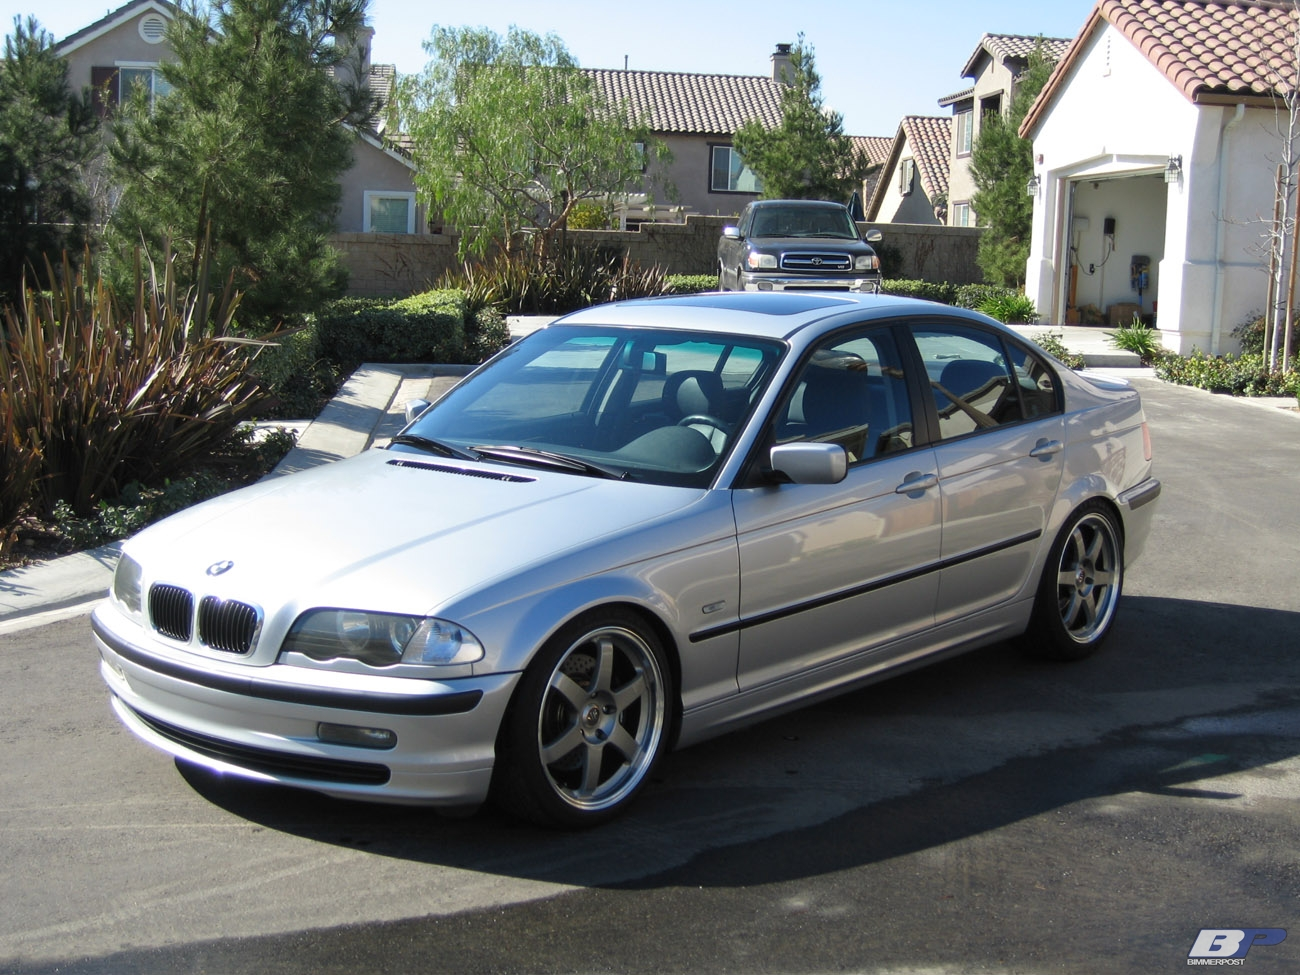 Coupe Series 2004 bmw 330ci m package Bmw 323i Convertible M Package Pictures to pin on Pinterest